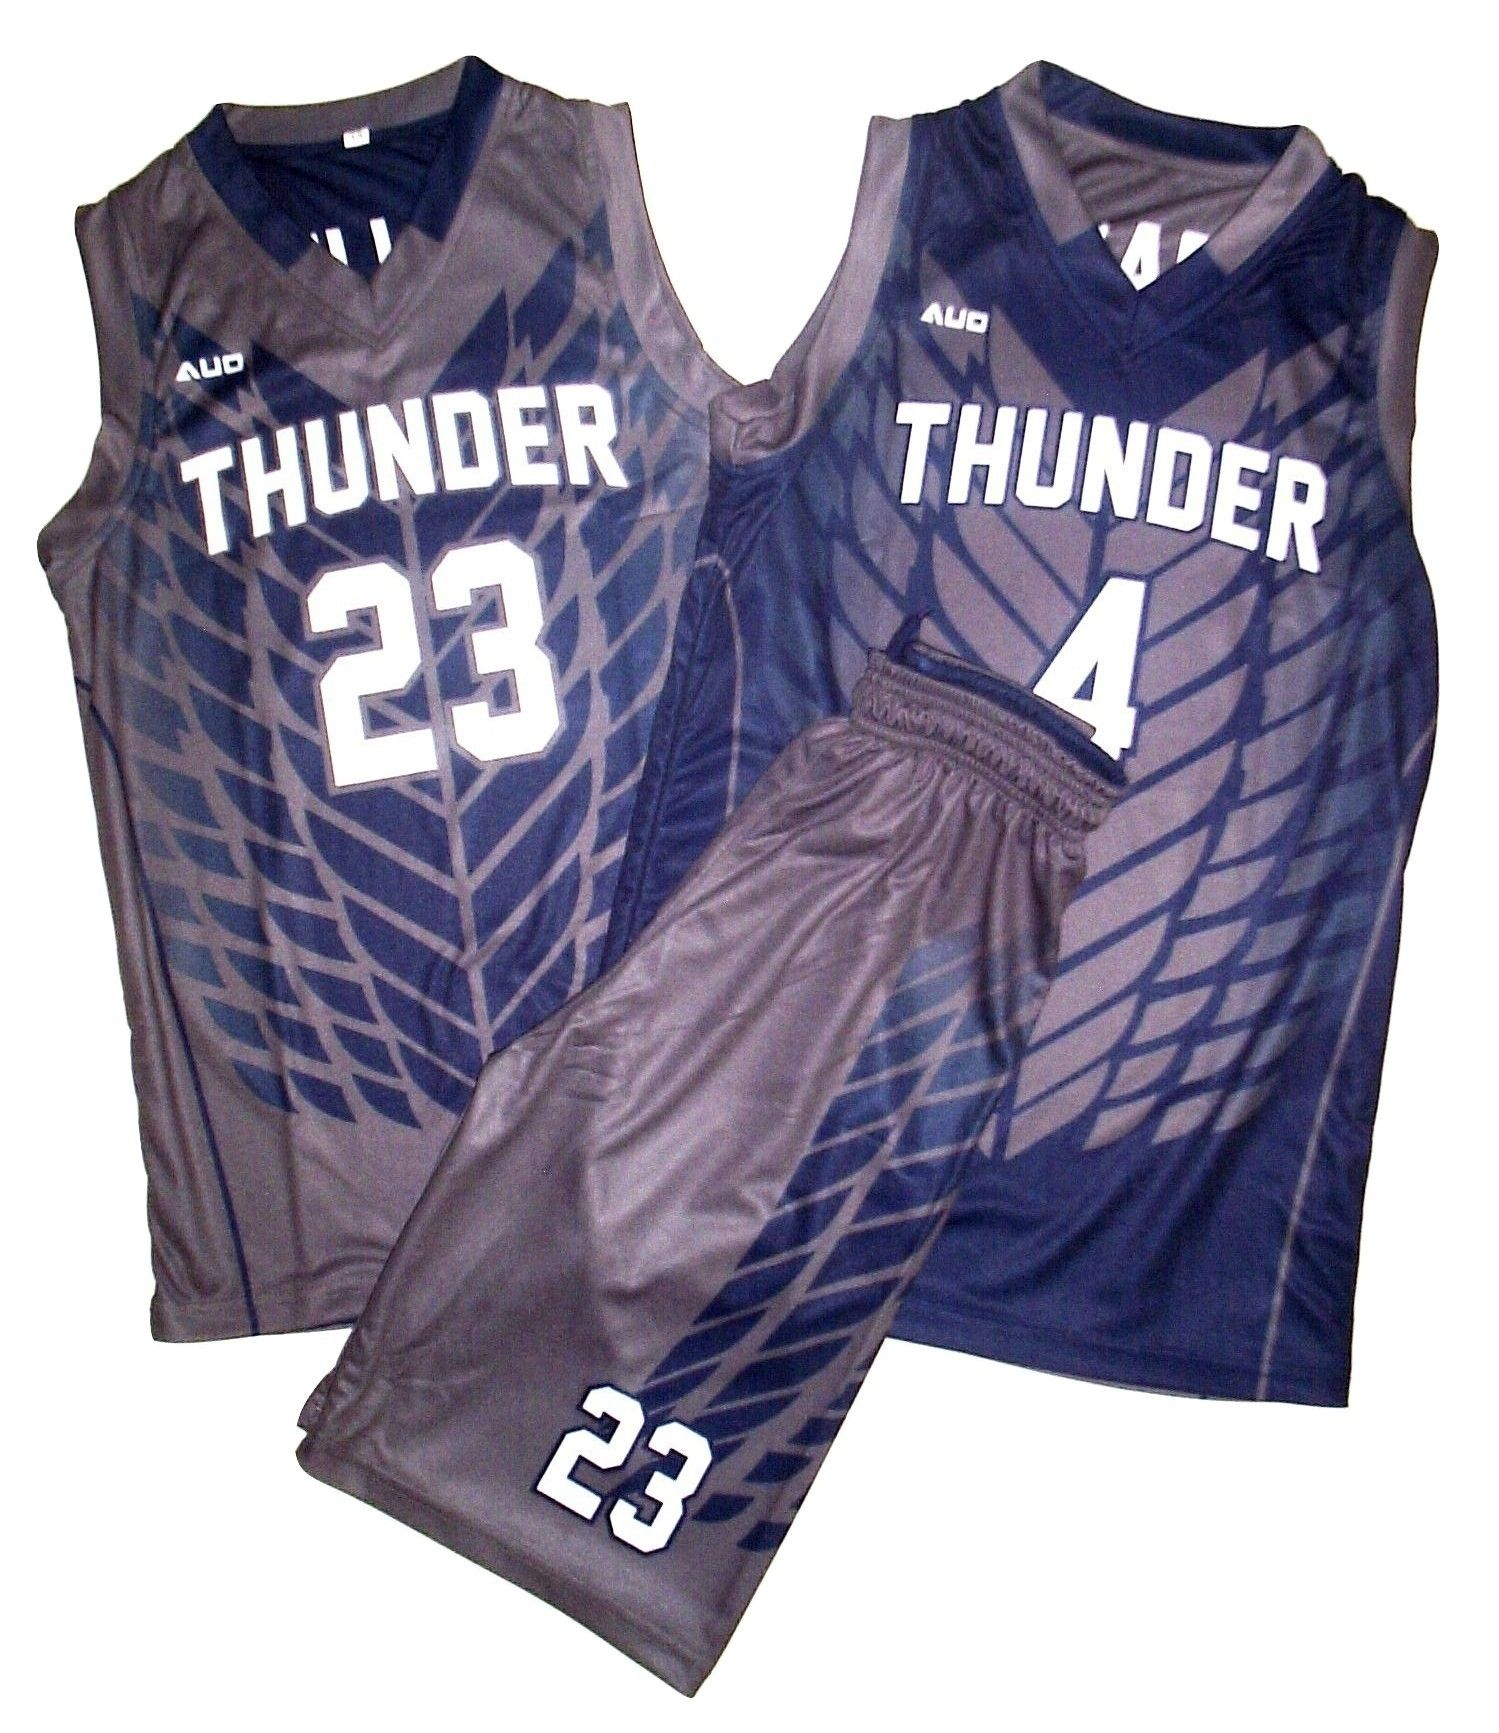 73a5c817ac4 Get custom sublimated youth basketball uniforms online